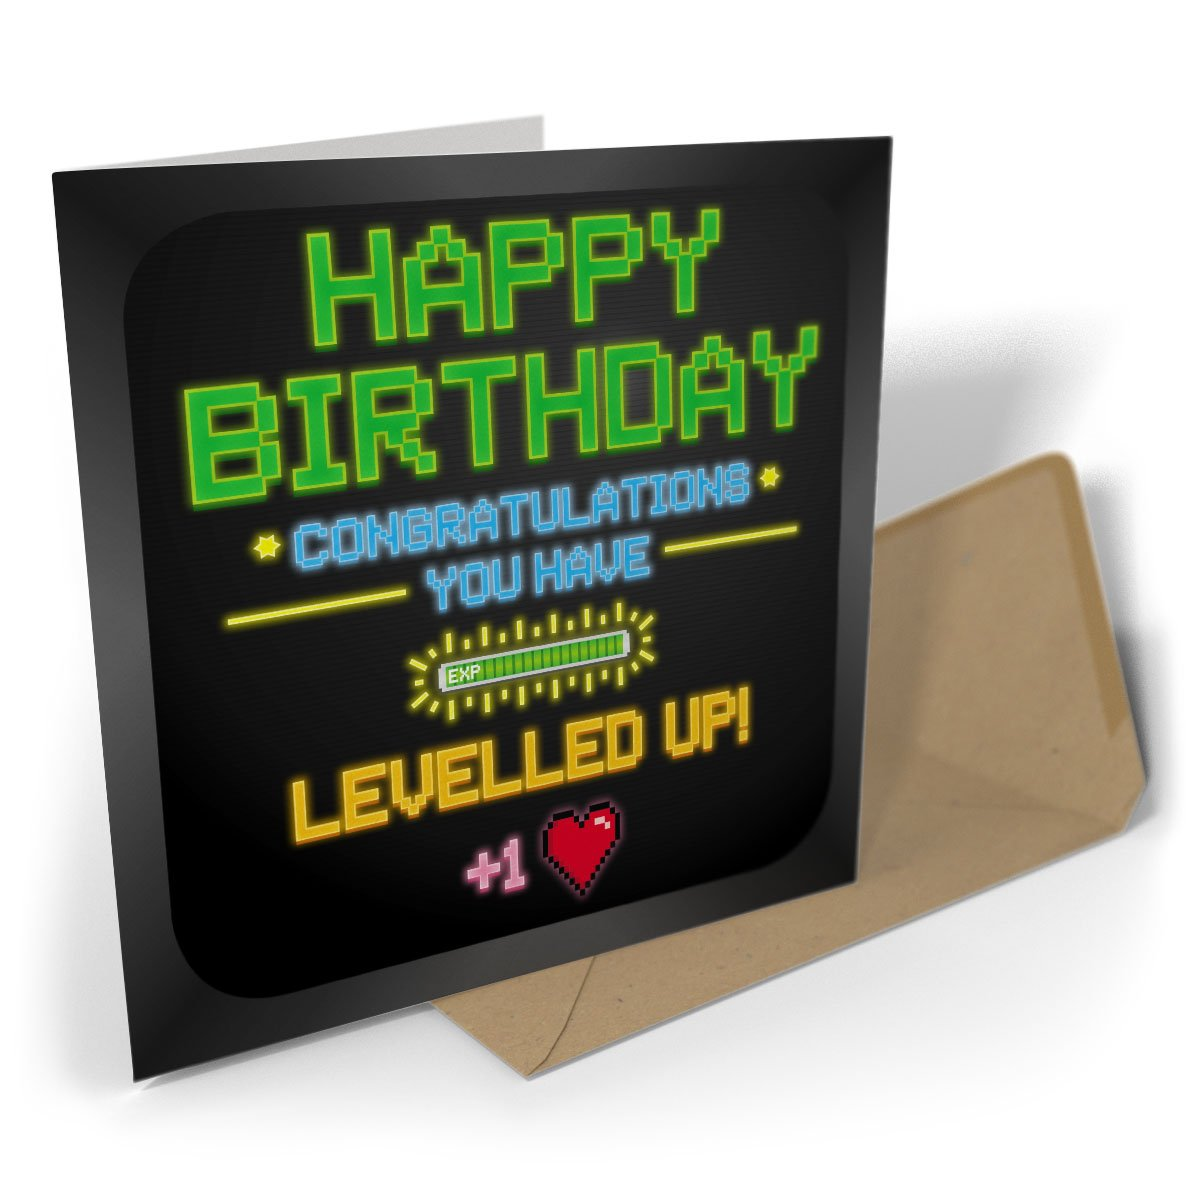 Greetings Card: Happy Birthday Congratulations You Have Levelled Up! Black Raven Design